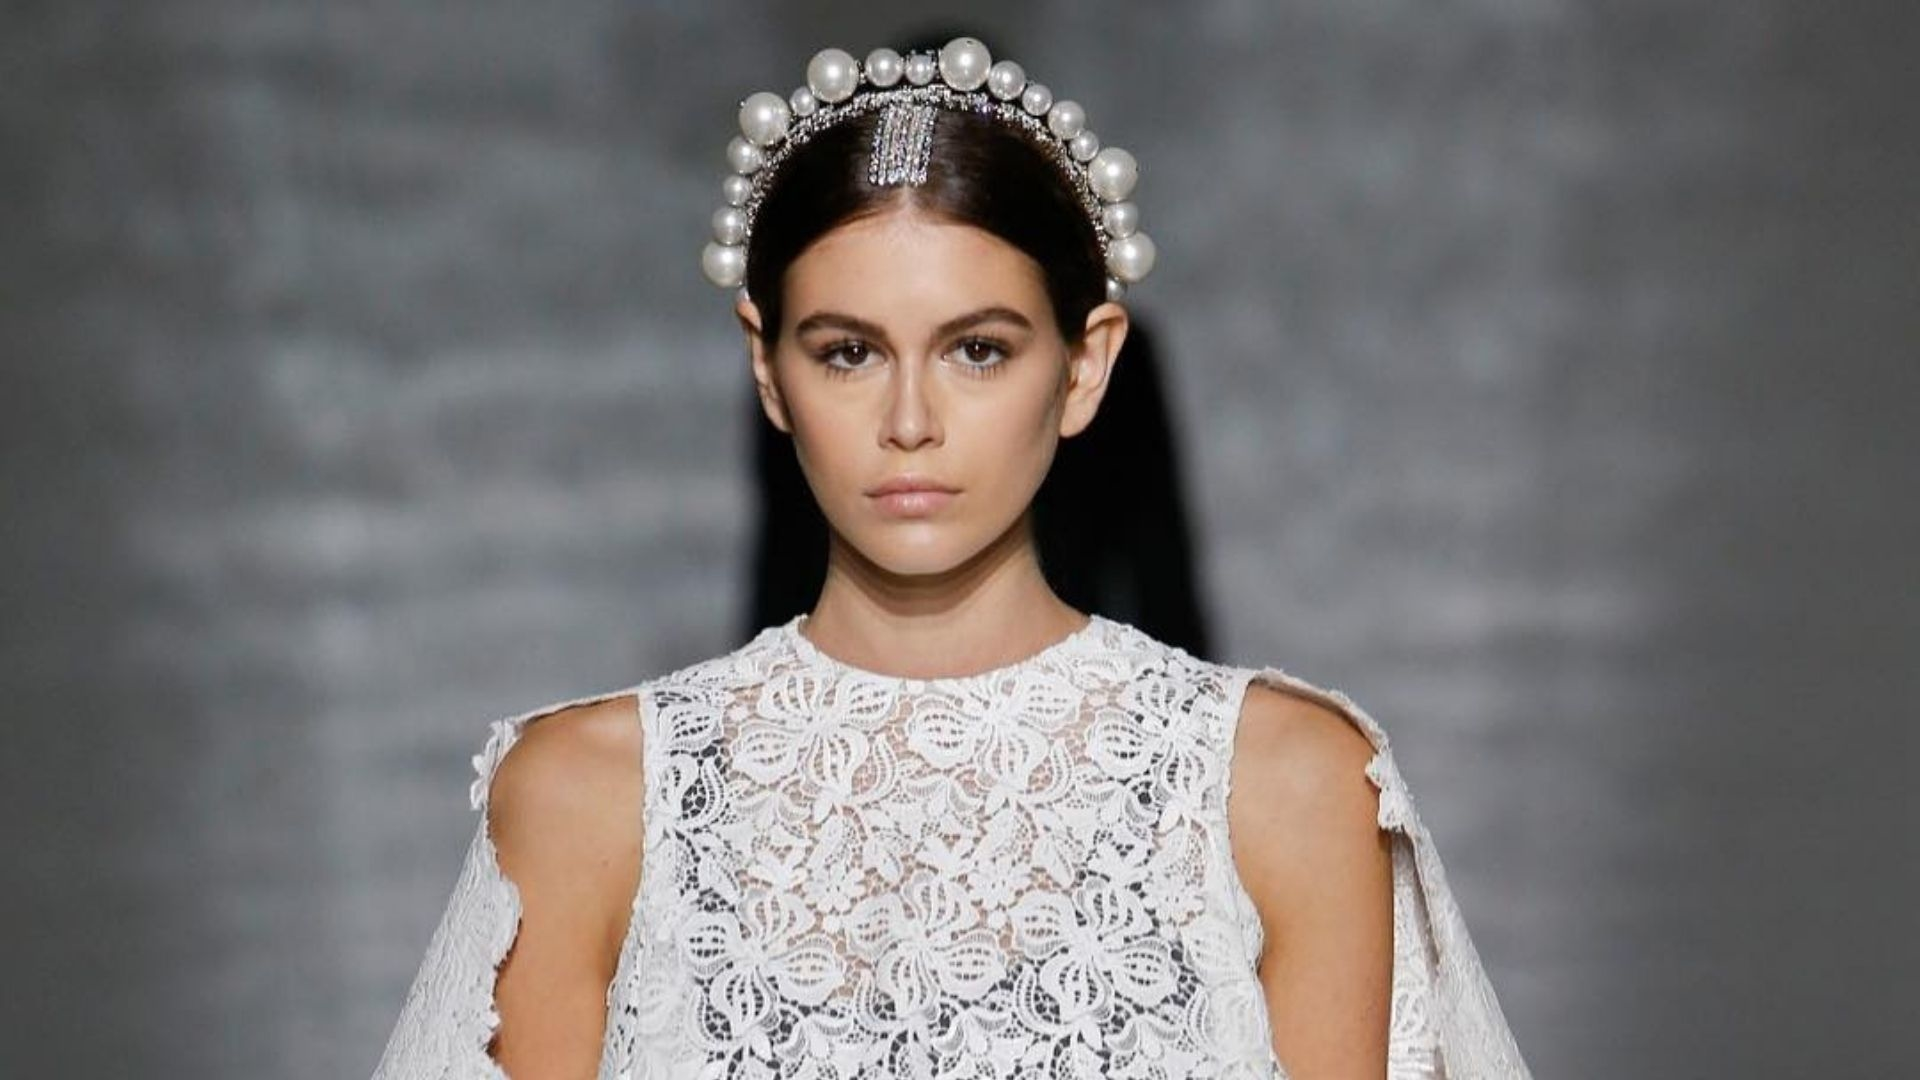 15 Embellished Headbands You Need In Your Wardrobe This Autumn